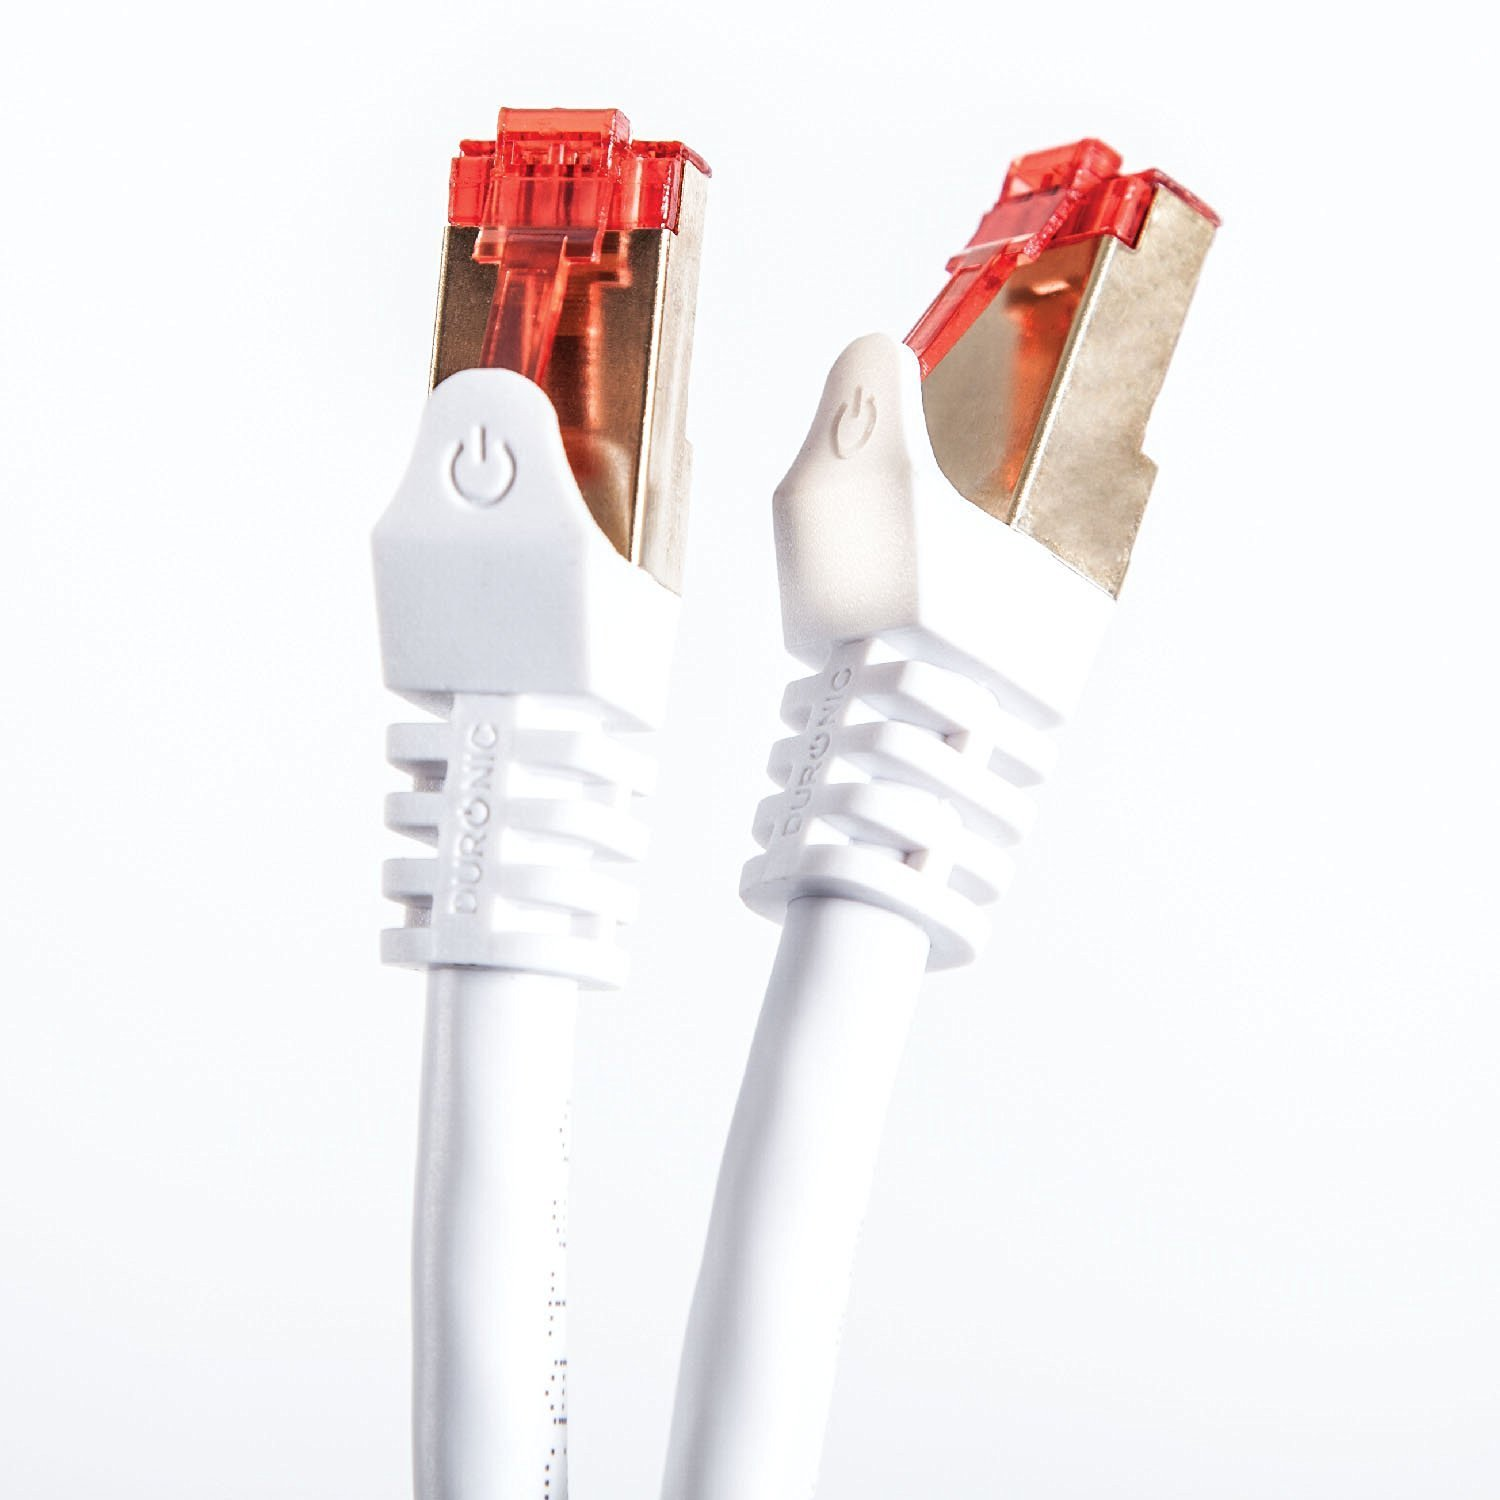 ACL 4 Feet RJ45 Snagless//Molded Boot Red Cat5e Ethernet Lan Cable 1 Pack